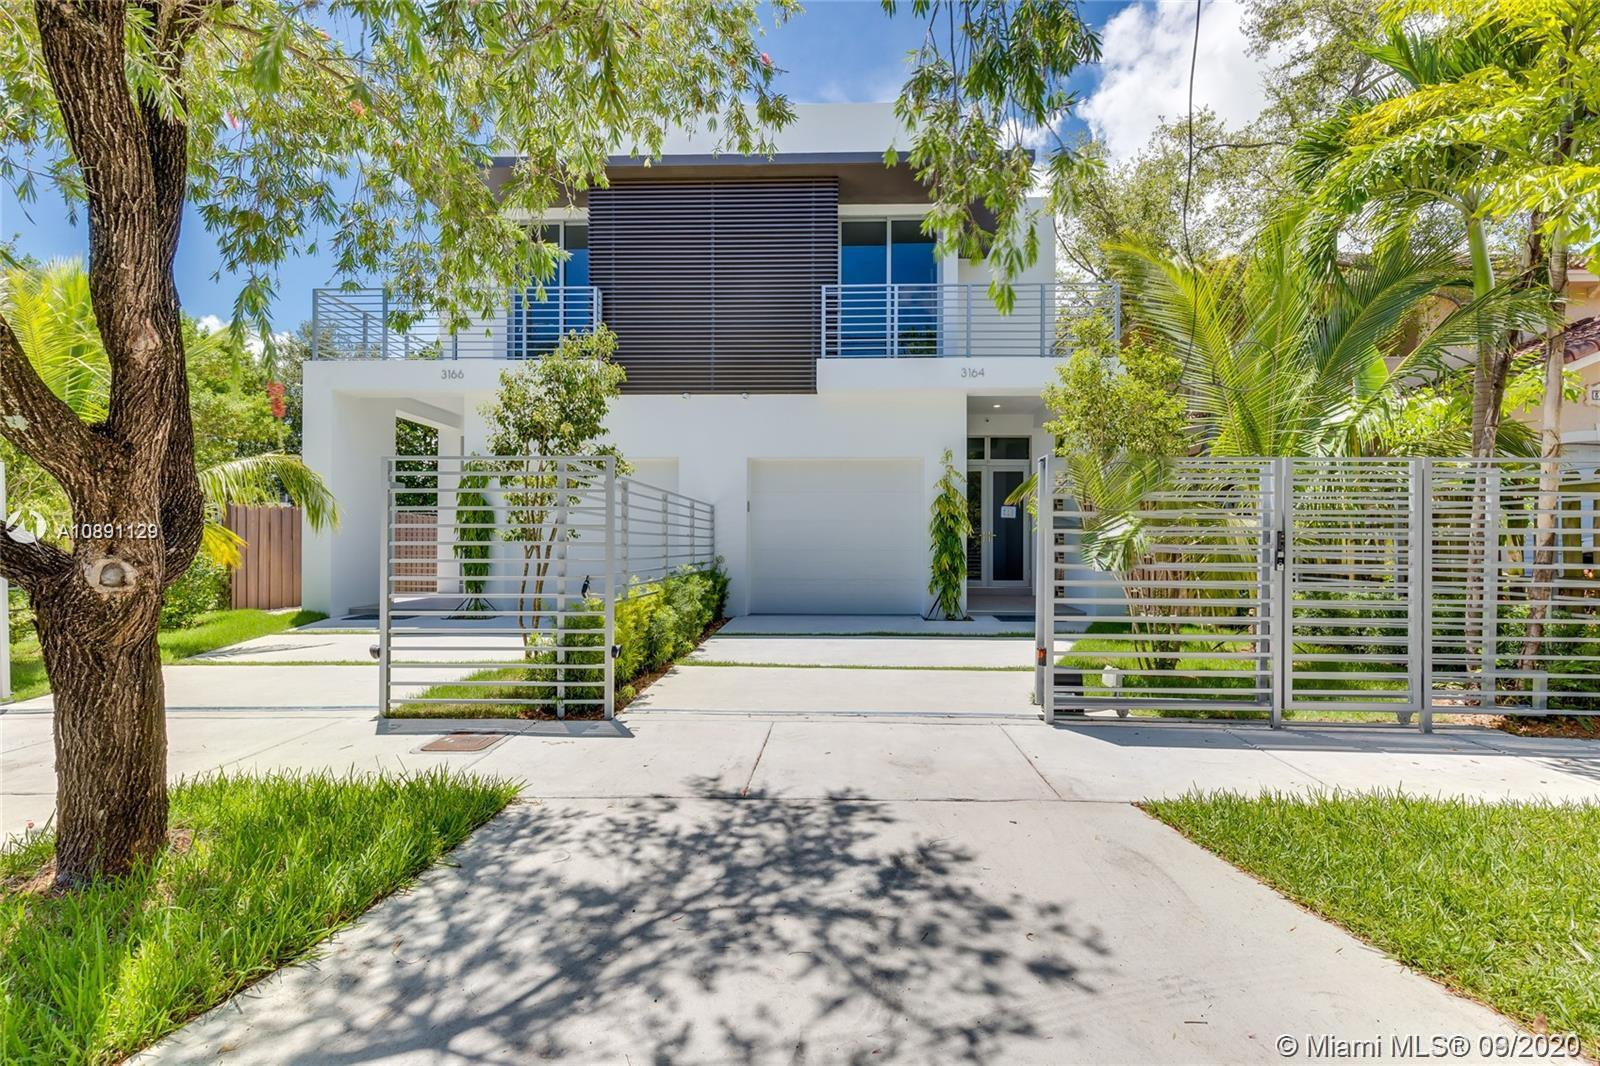 3164  Ohio St  For Sale A10891129, FL